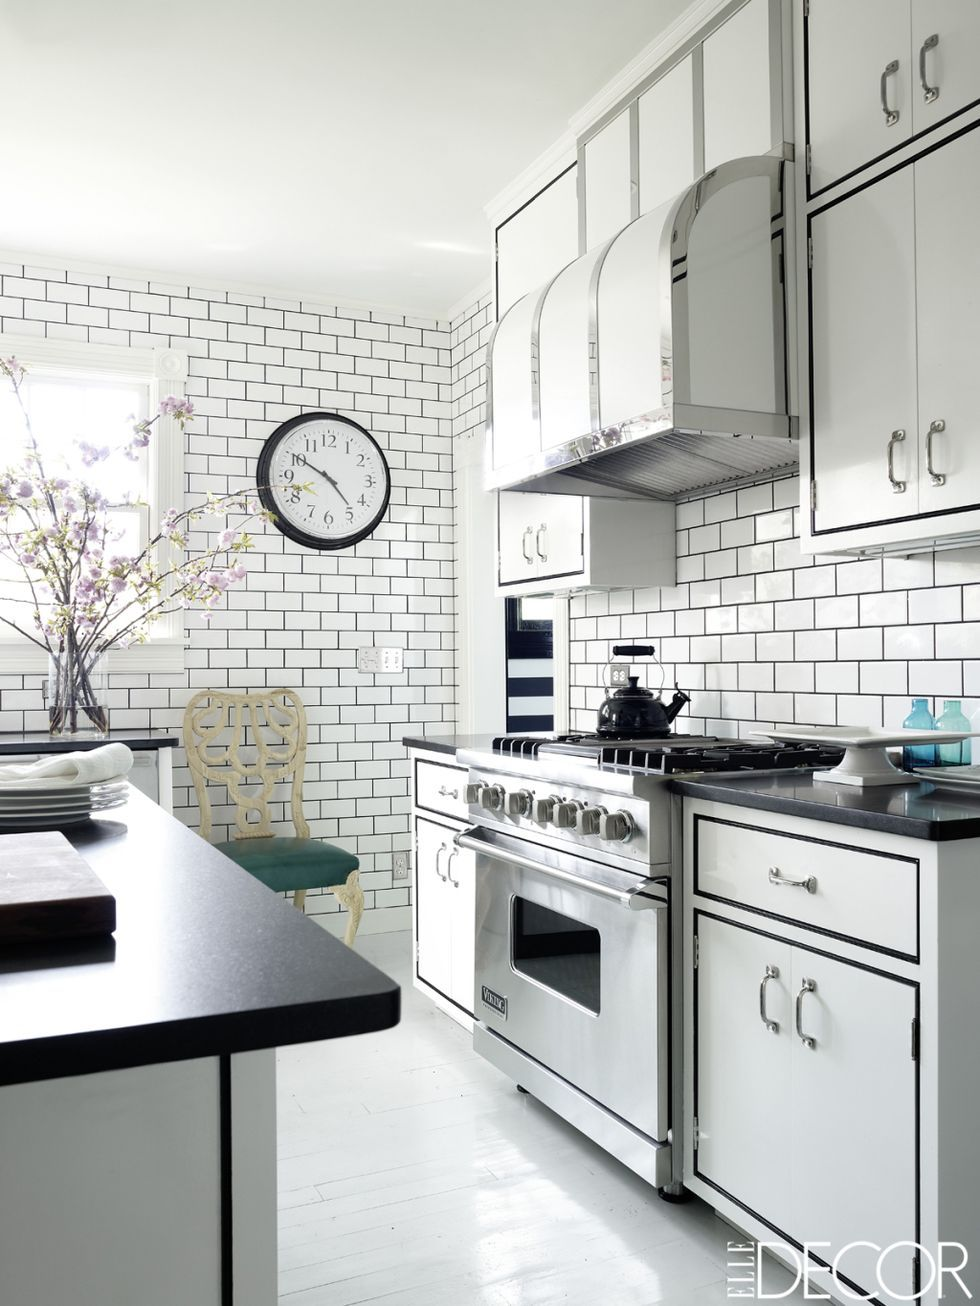 - 33 Subway Tile Backsplashes - Stylish Subway-Tile Ideas For Kitchens